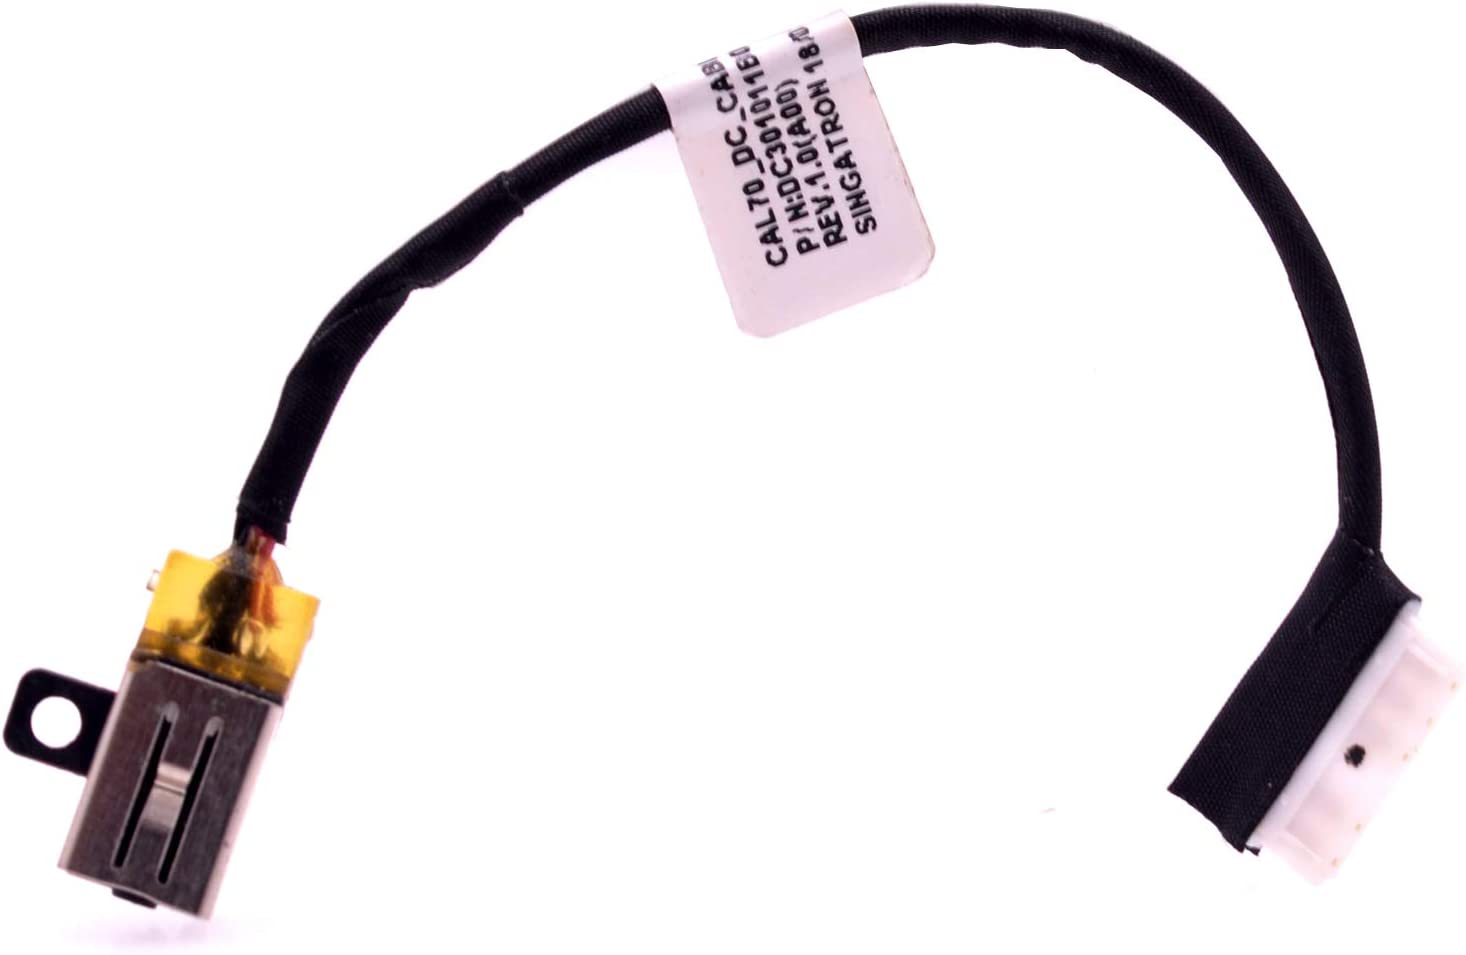 Zahara DC Power Jack Harness Cable Socket Plug Replacement for Dell Inspiron 15-5570 i5570 15-5575 i5575 3579